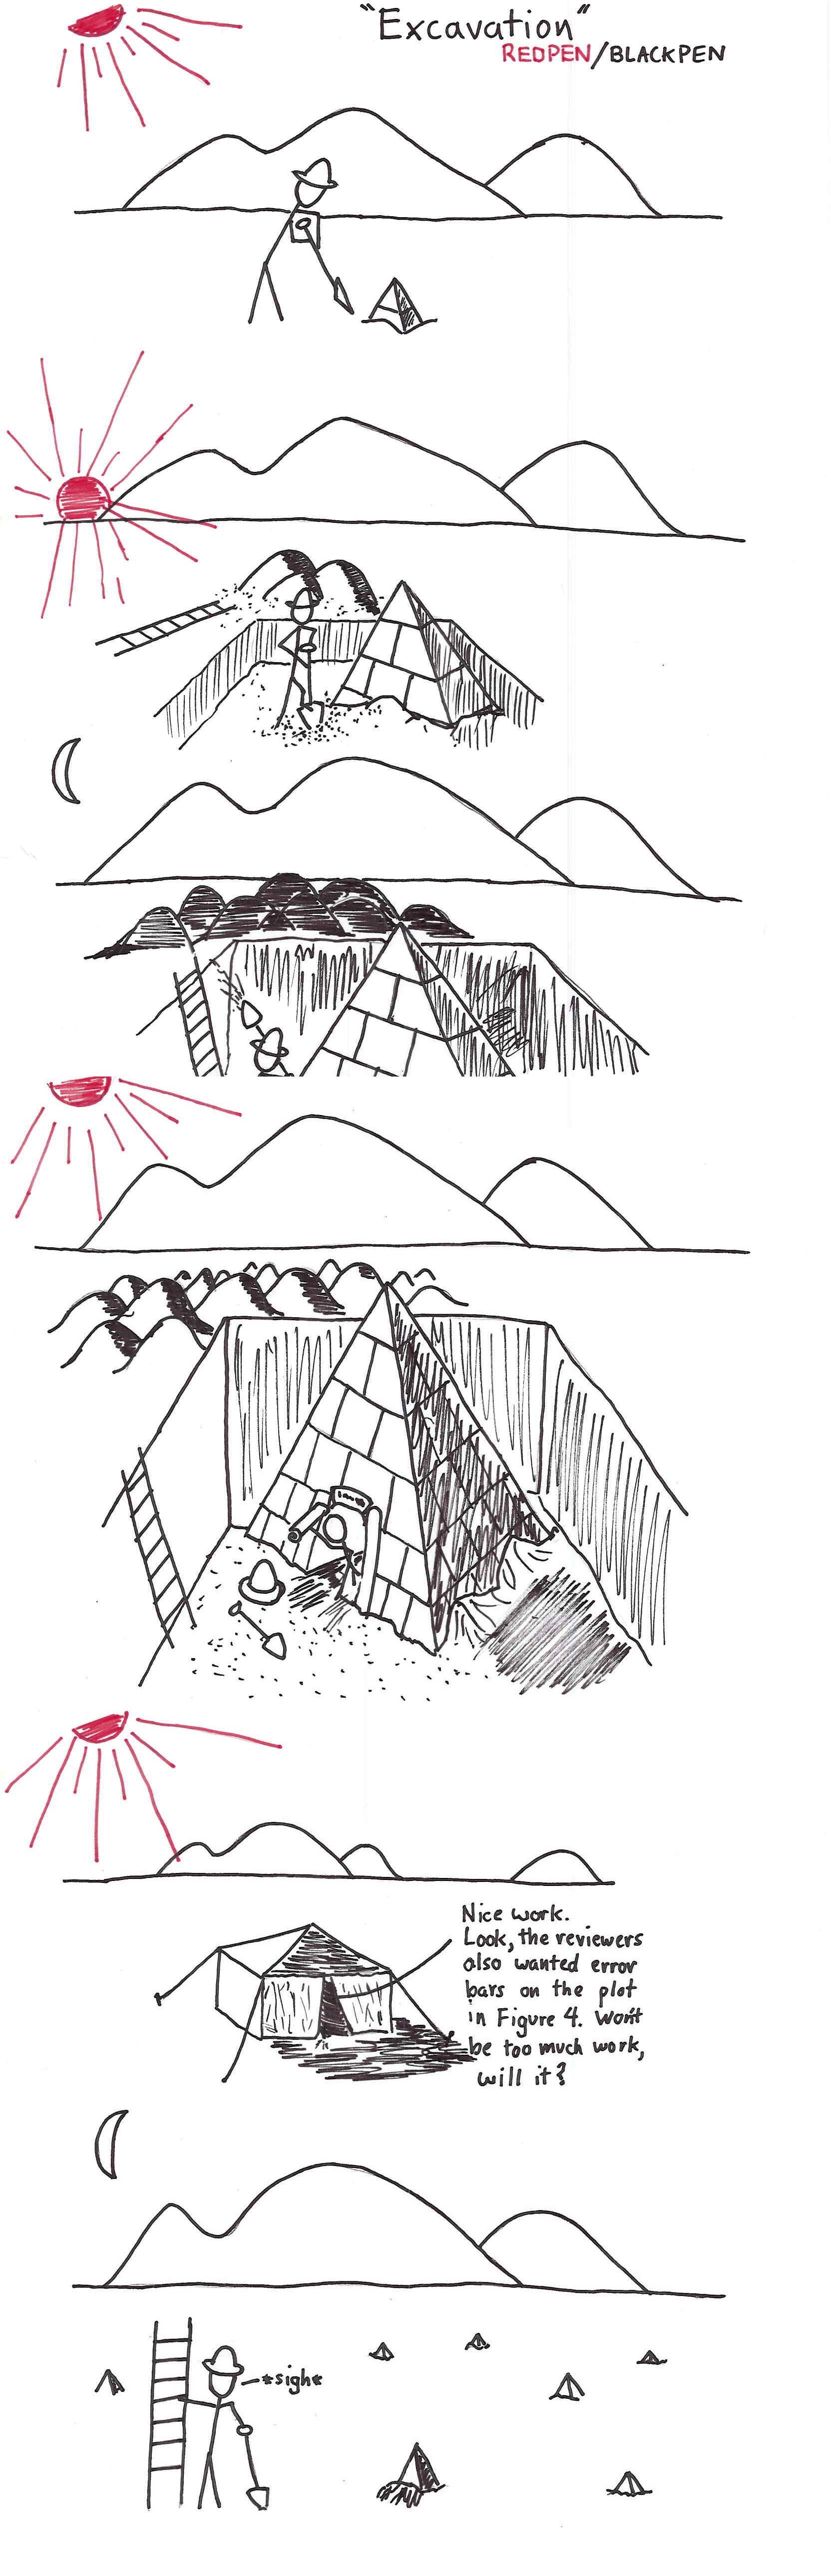 I was giving serious consideration to having the guy have to fight off Nazis, outrun a boulder, and duke it out with a big dude under an airplane after he got the scroll. But I couldn't figure out how to draw faces melting off of the stick figures...